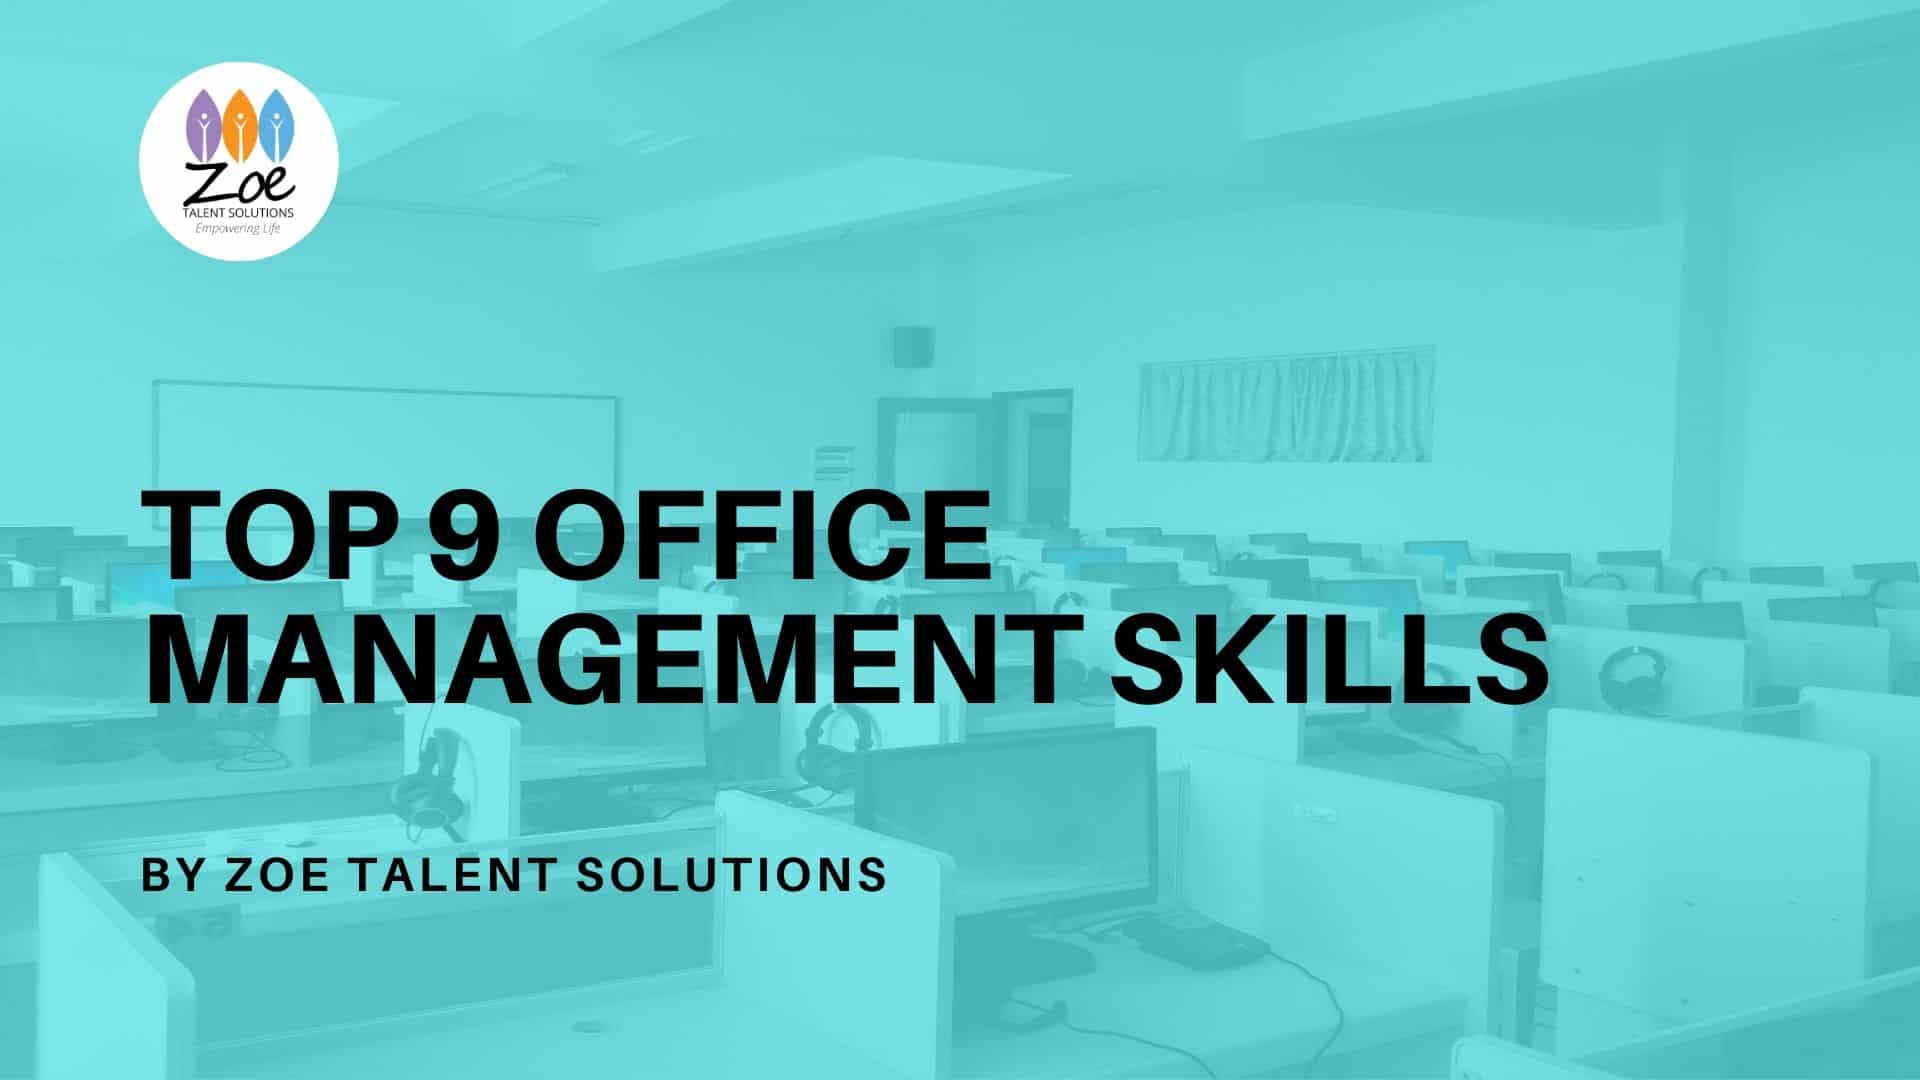 Top 9 Office Management Skills that will make you a Great Office Manager